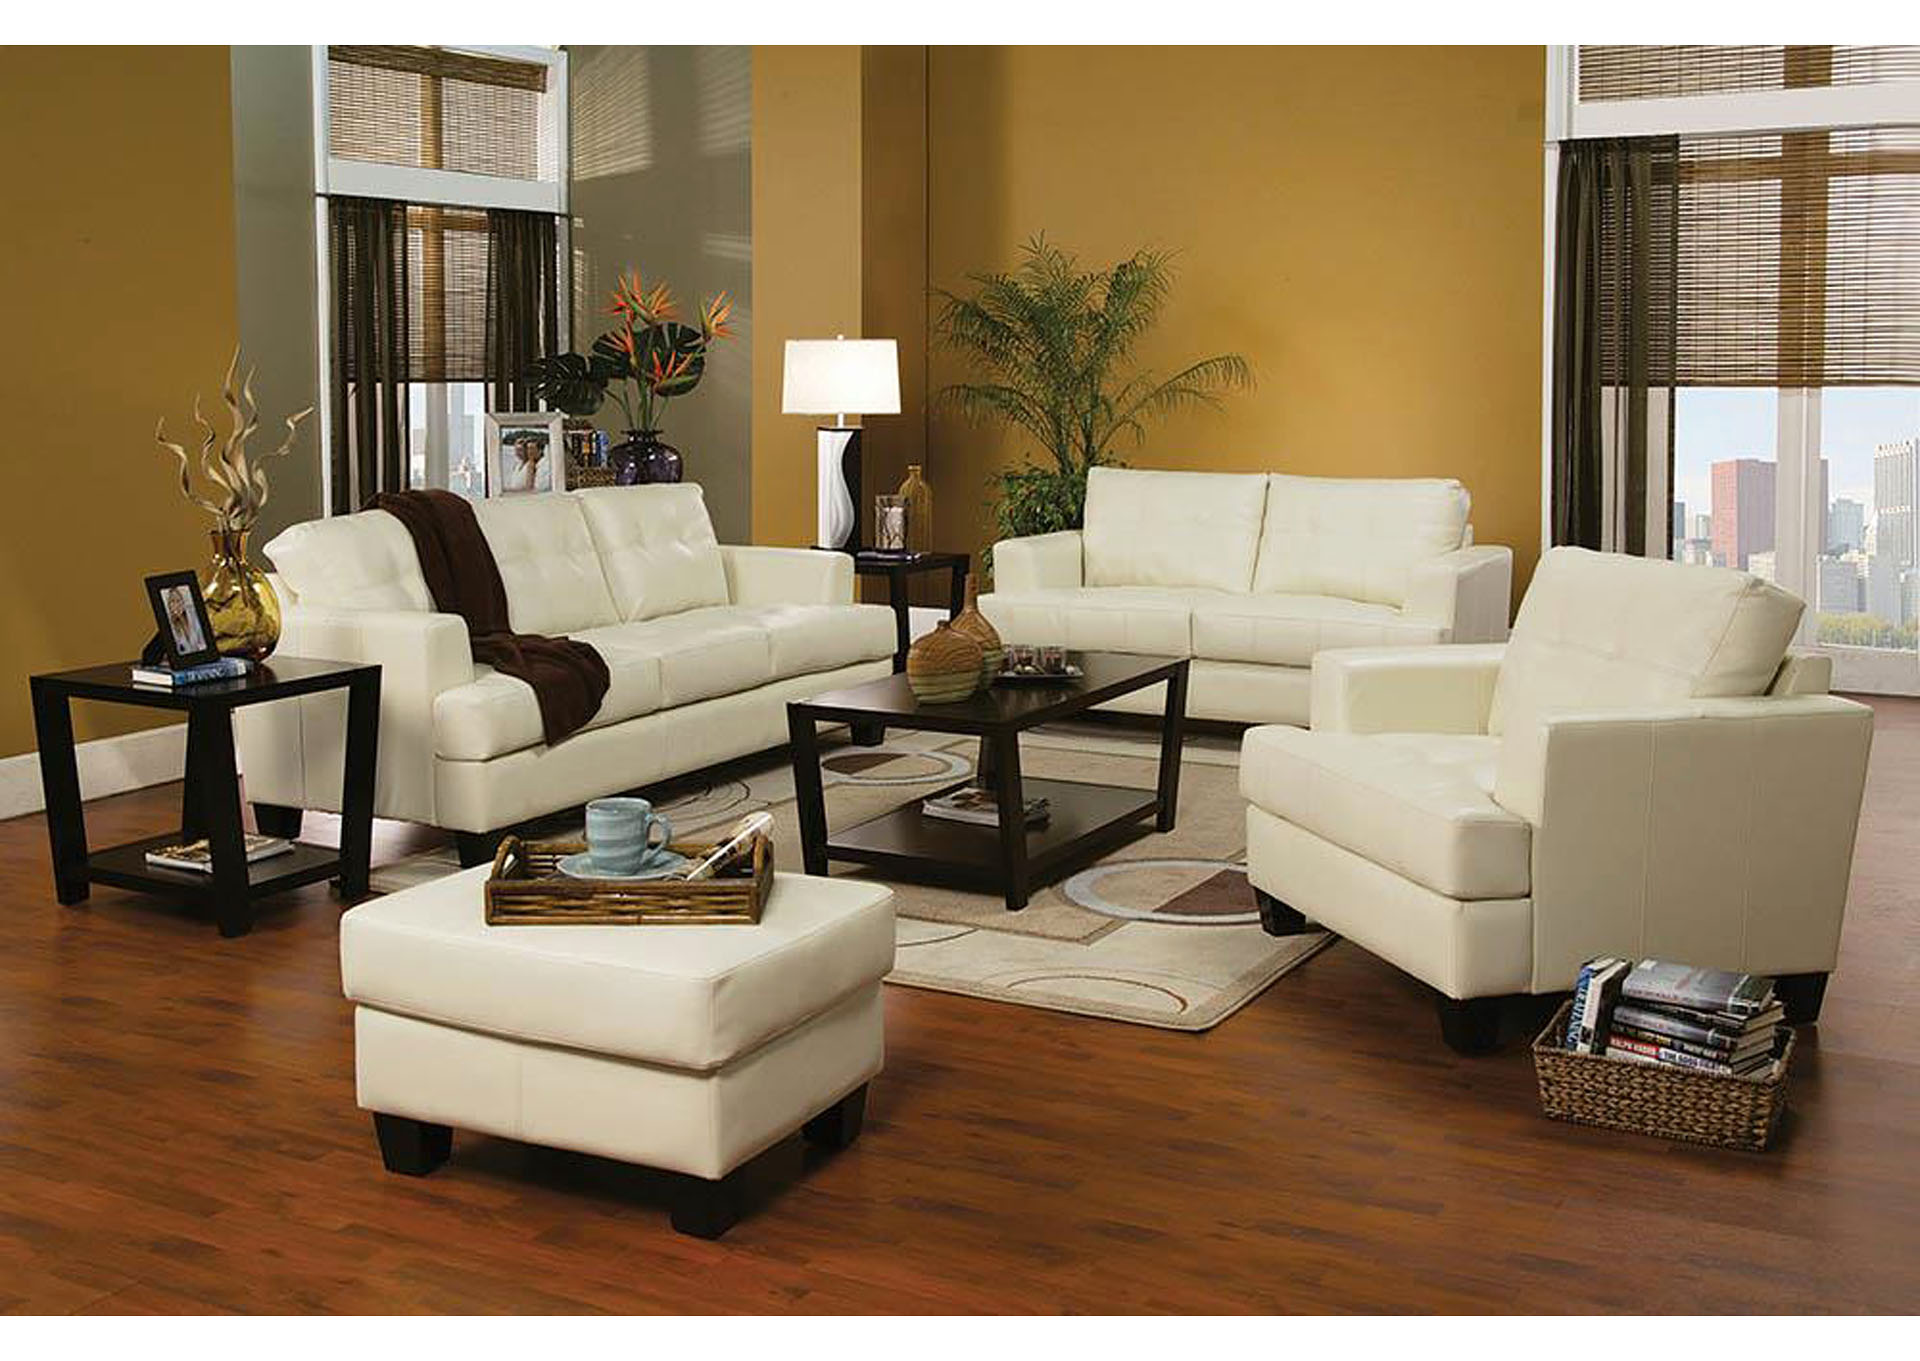 The Home Warehouse Ocean Nj Samuel Cream Bonded Leather